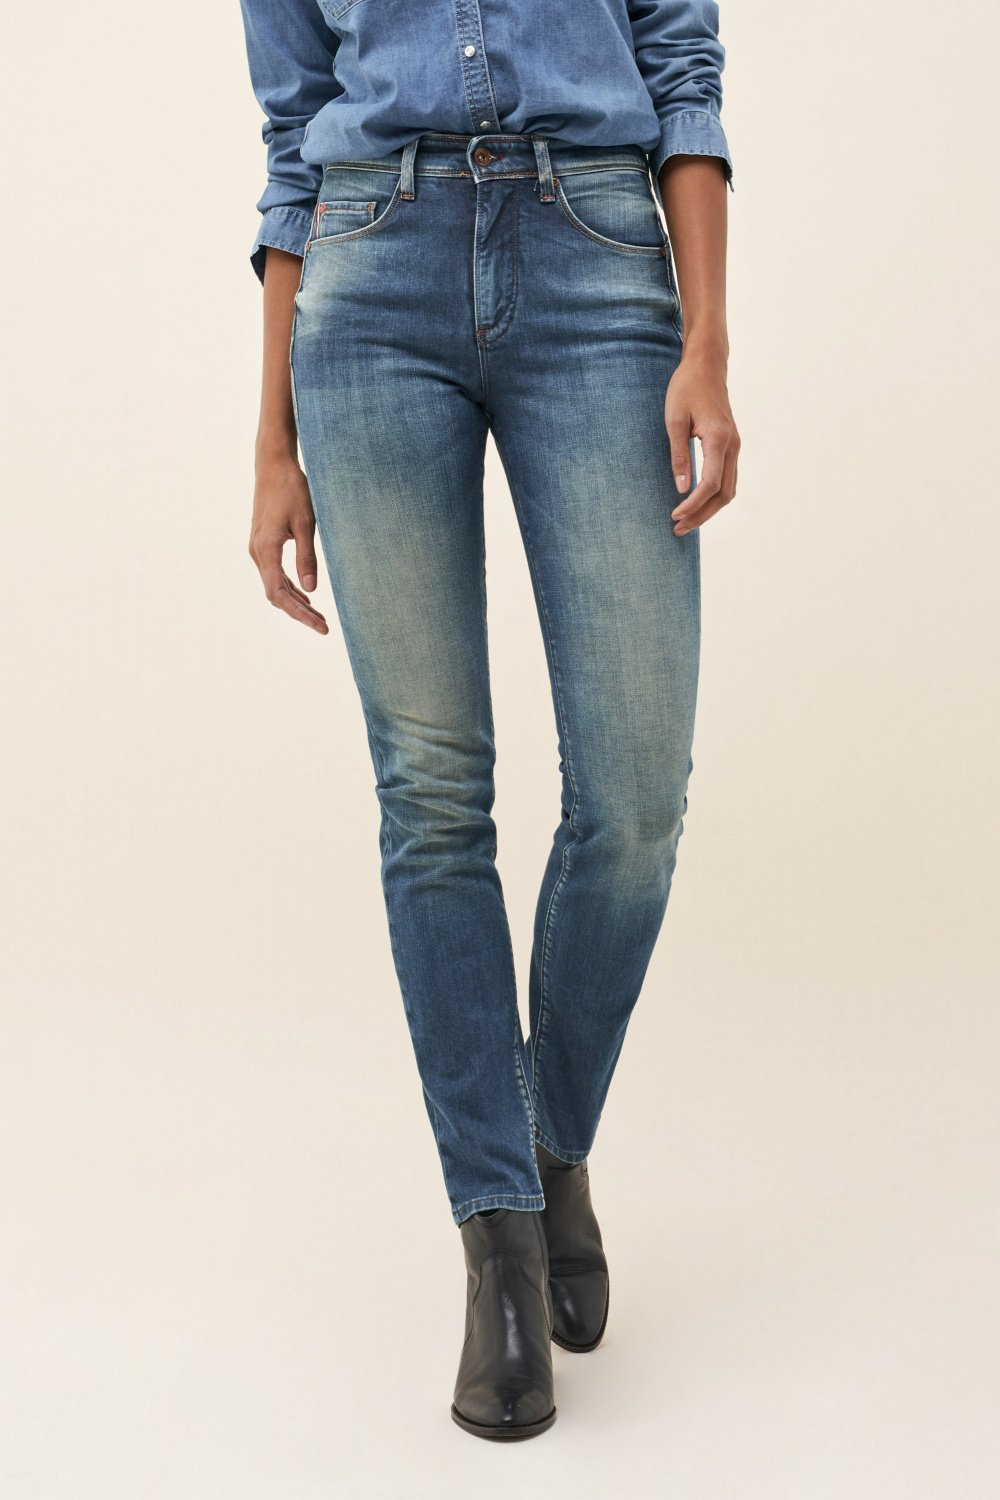 Push In Secret Glamour slim jeans in premium wash - Salsa